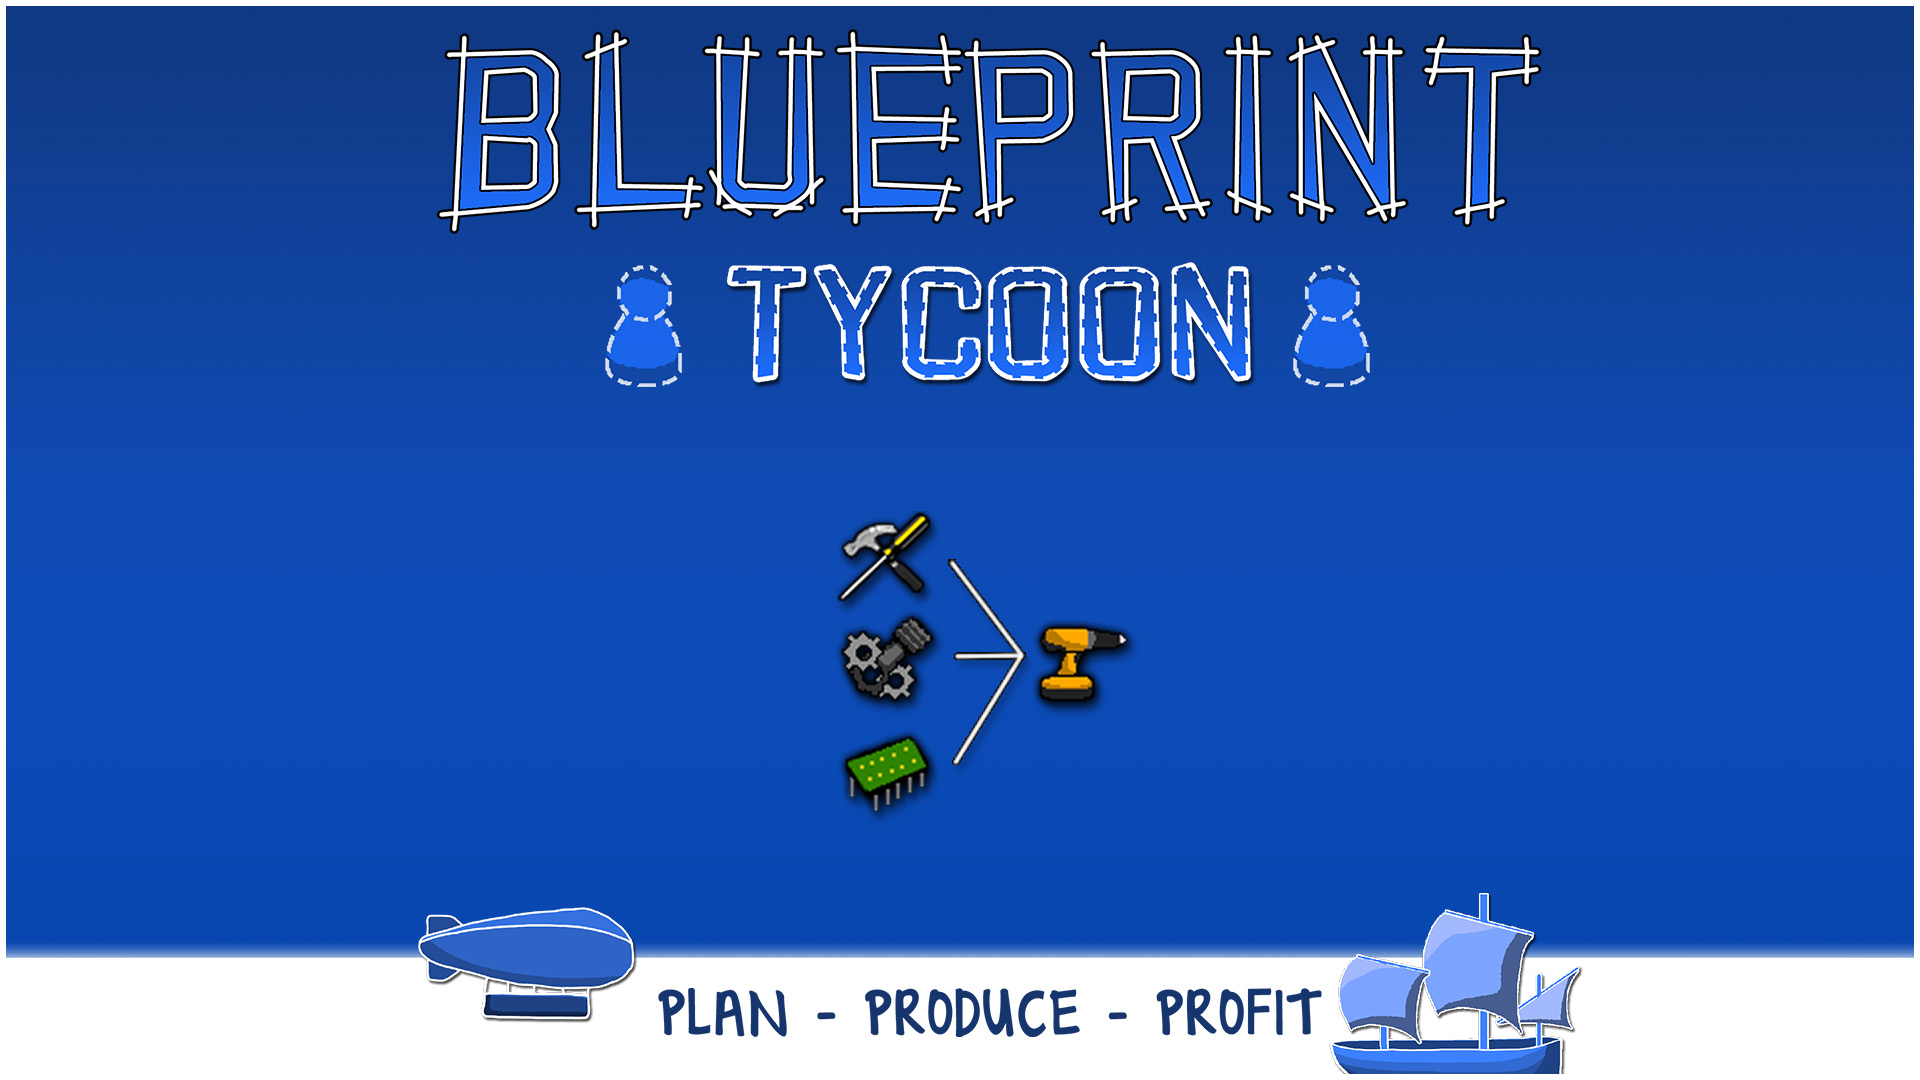 Steam card exchange showcase blueprint tycoon card 7 of 15artwork power tools blueprint malvernweather Choice Image